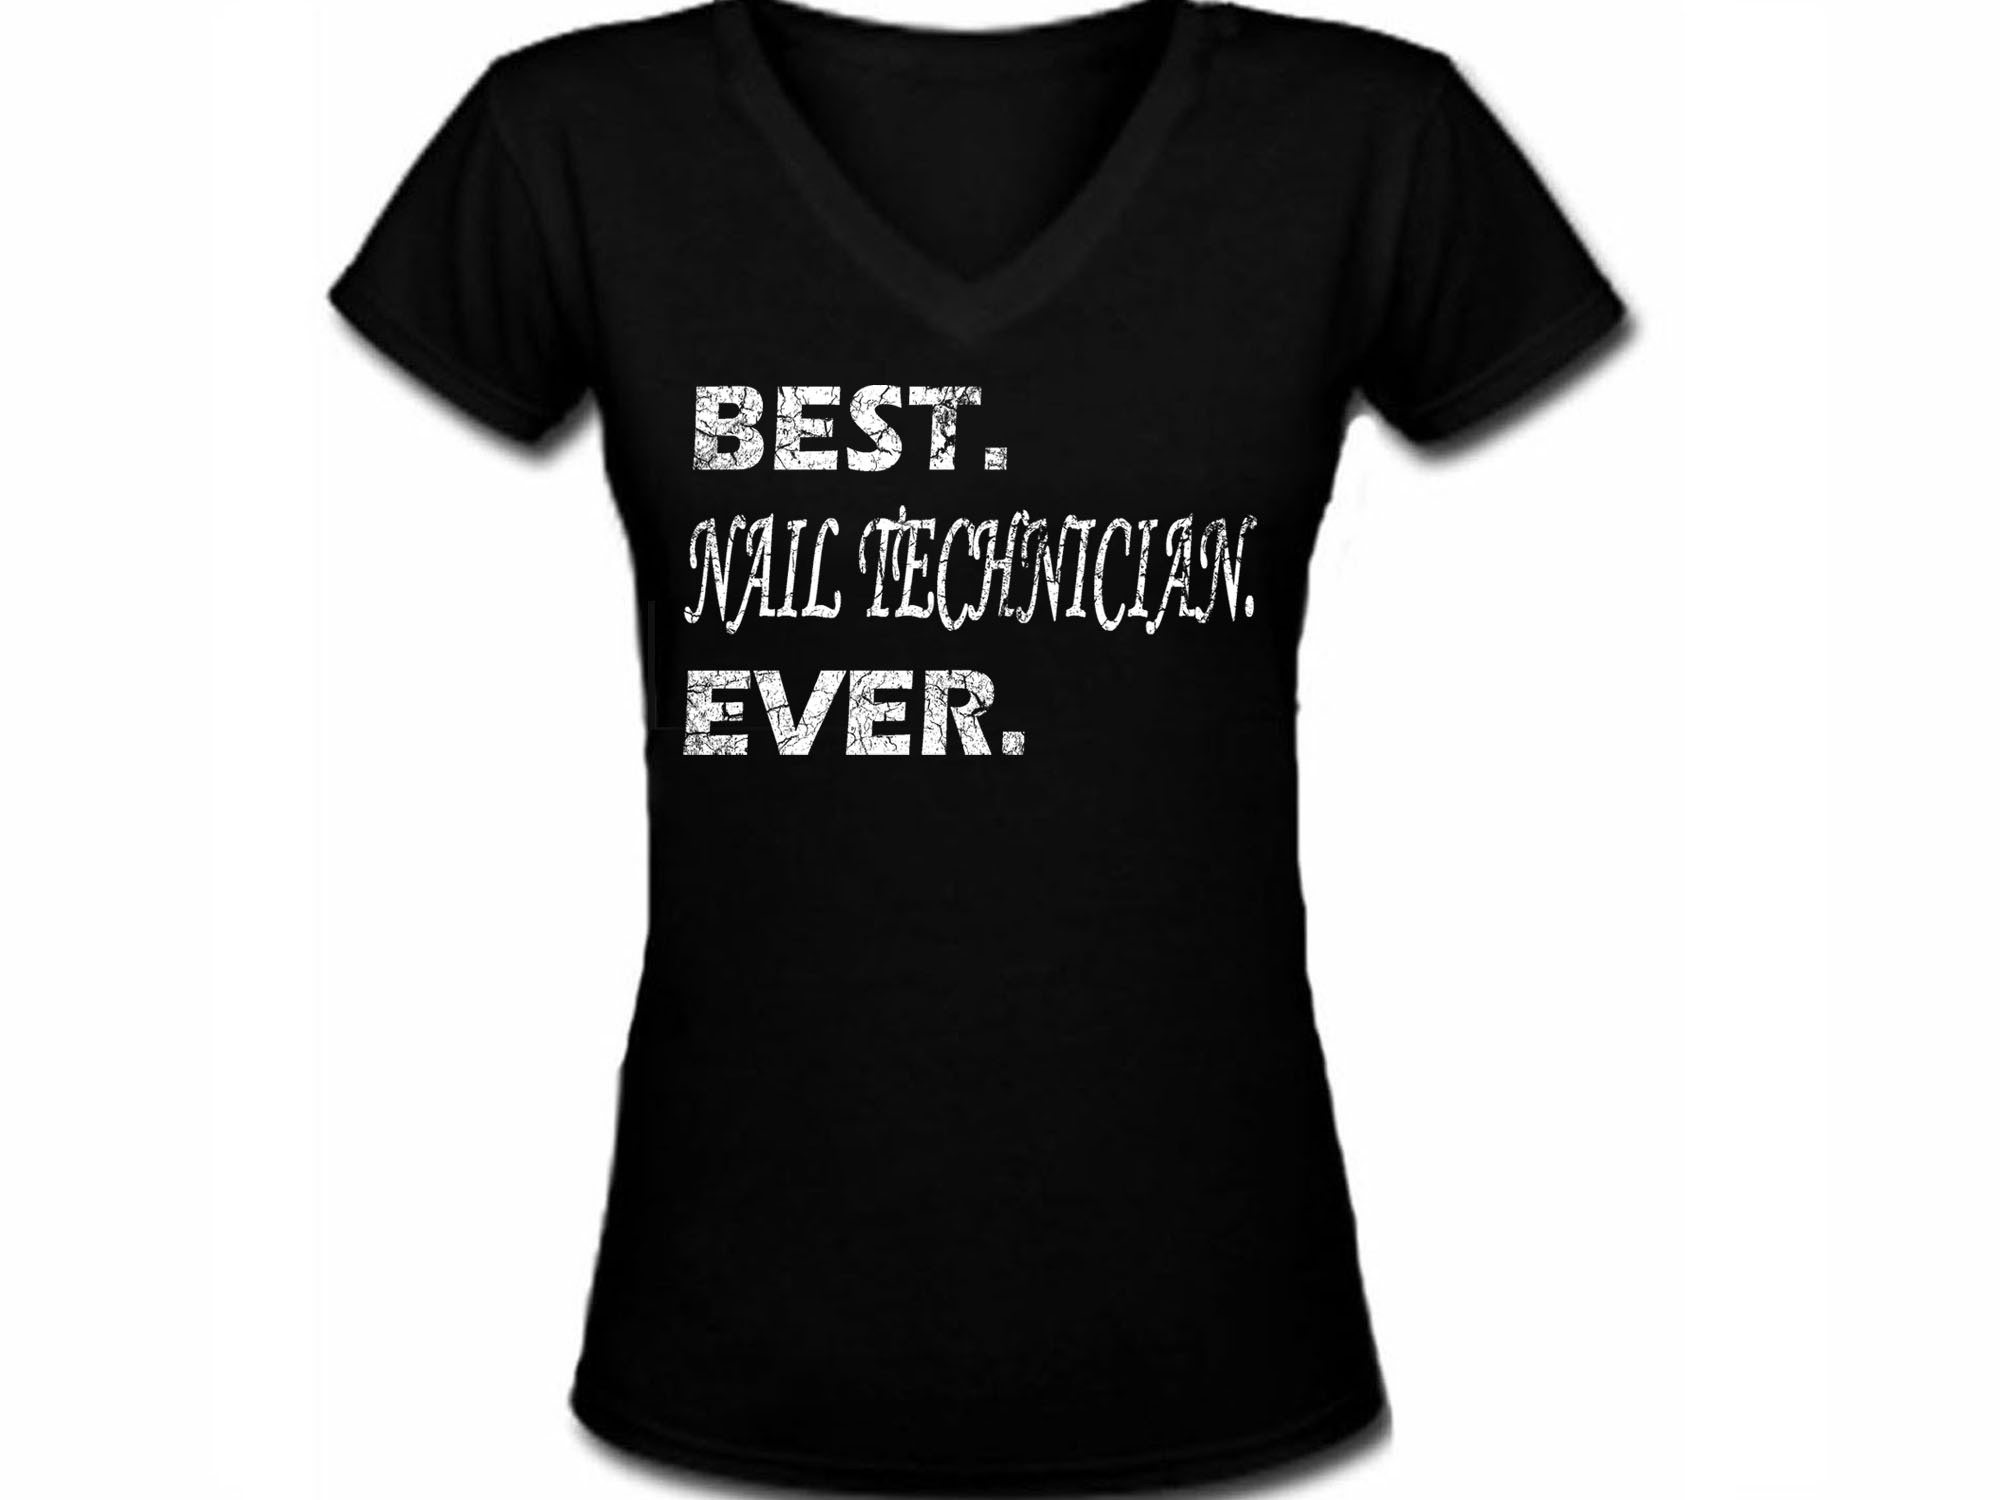 98f1c007 Best nail technician ever women v neck black t shirt. Click to enlarge